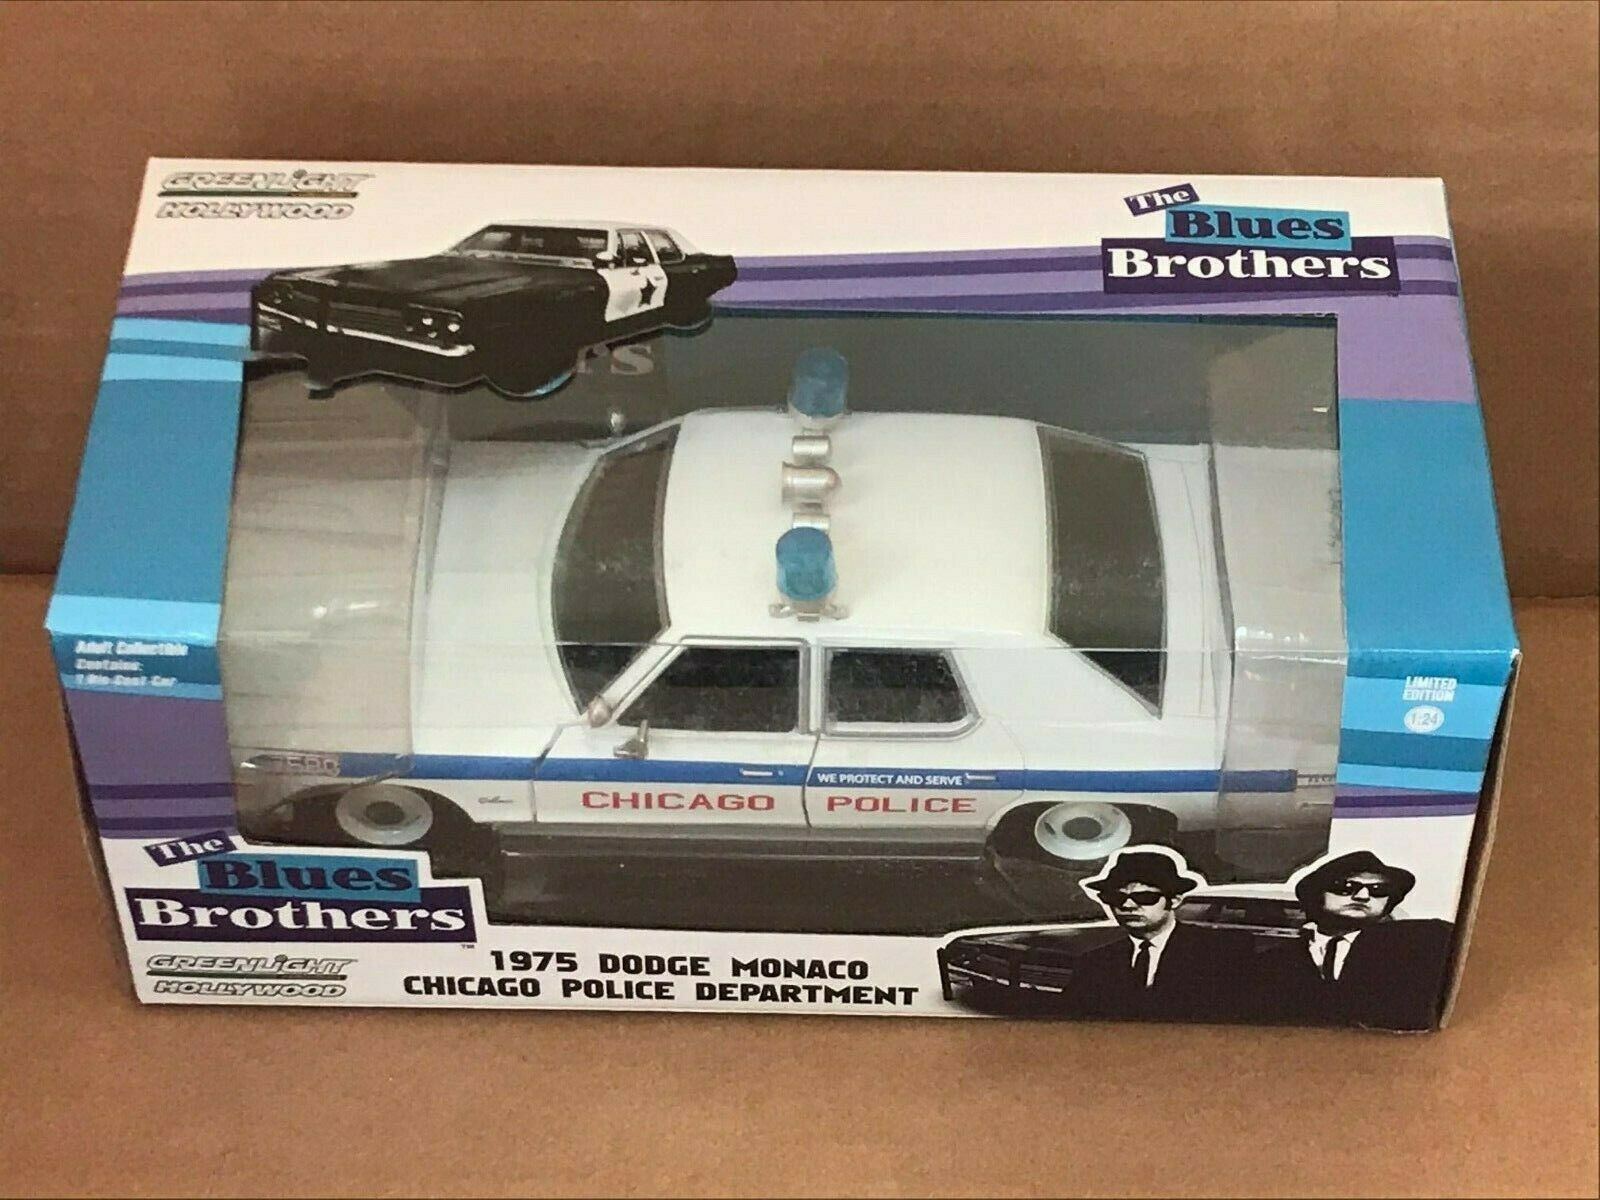 Greenlight Hollywood Diecast - The bluees Bredhers 1975 Dodge Monaco 1 24 scale